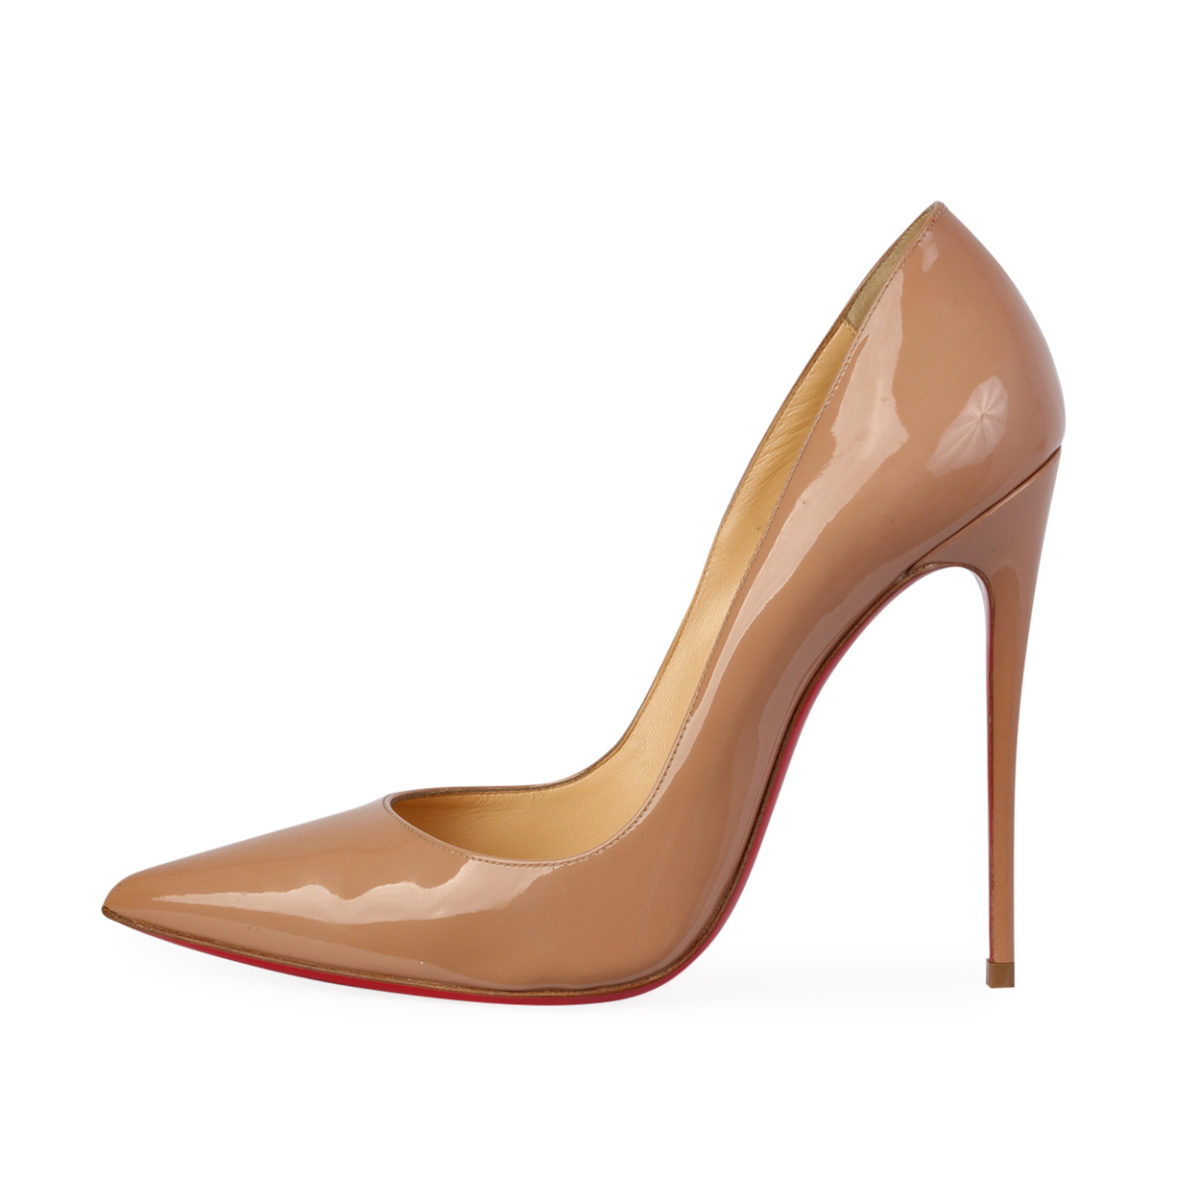 best cheap b3a0a 219a1 CHRISTIAN LOUBOUTIN Patent Leather So Kate Pumps Nude - S: 38.5 (5.5)